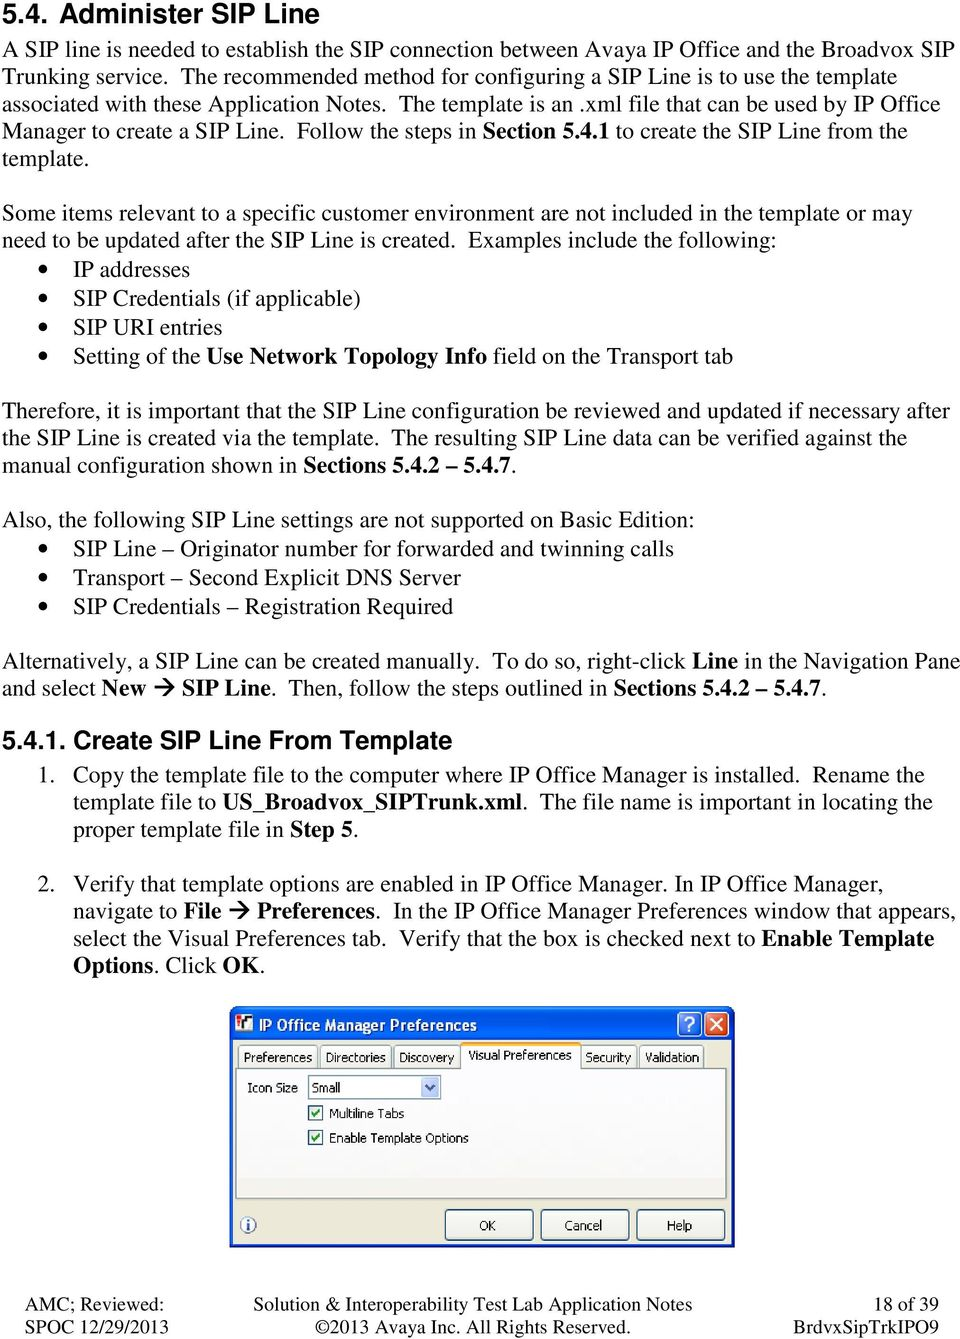 xml file that can be used by IP Office Manager to create a SIP Line. Follow the steps in Section 5.4.1 to create the SIP Line from the template.